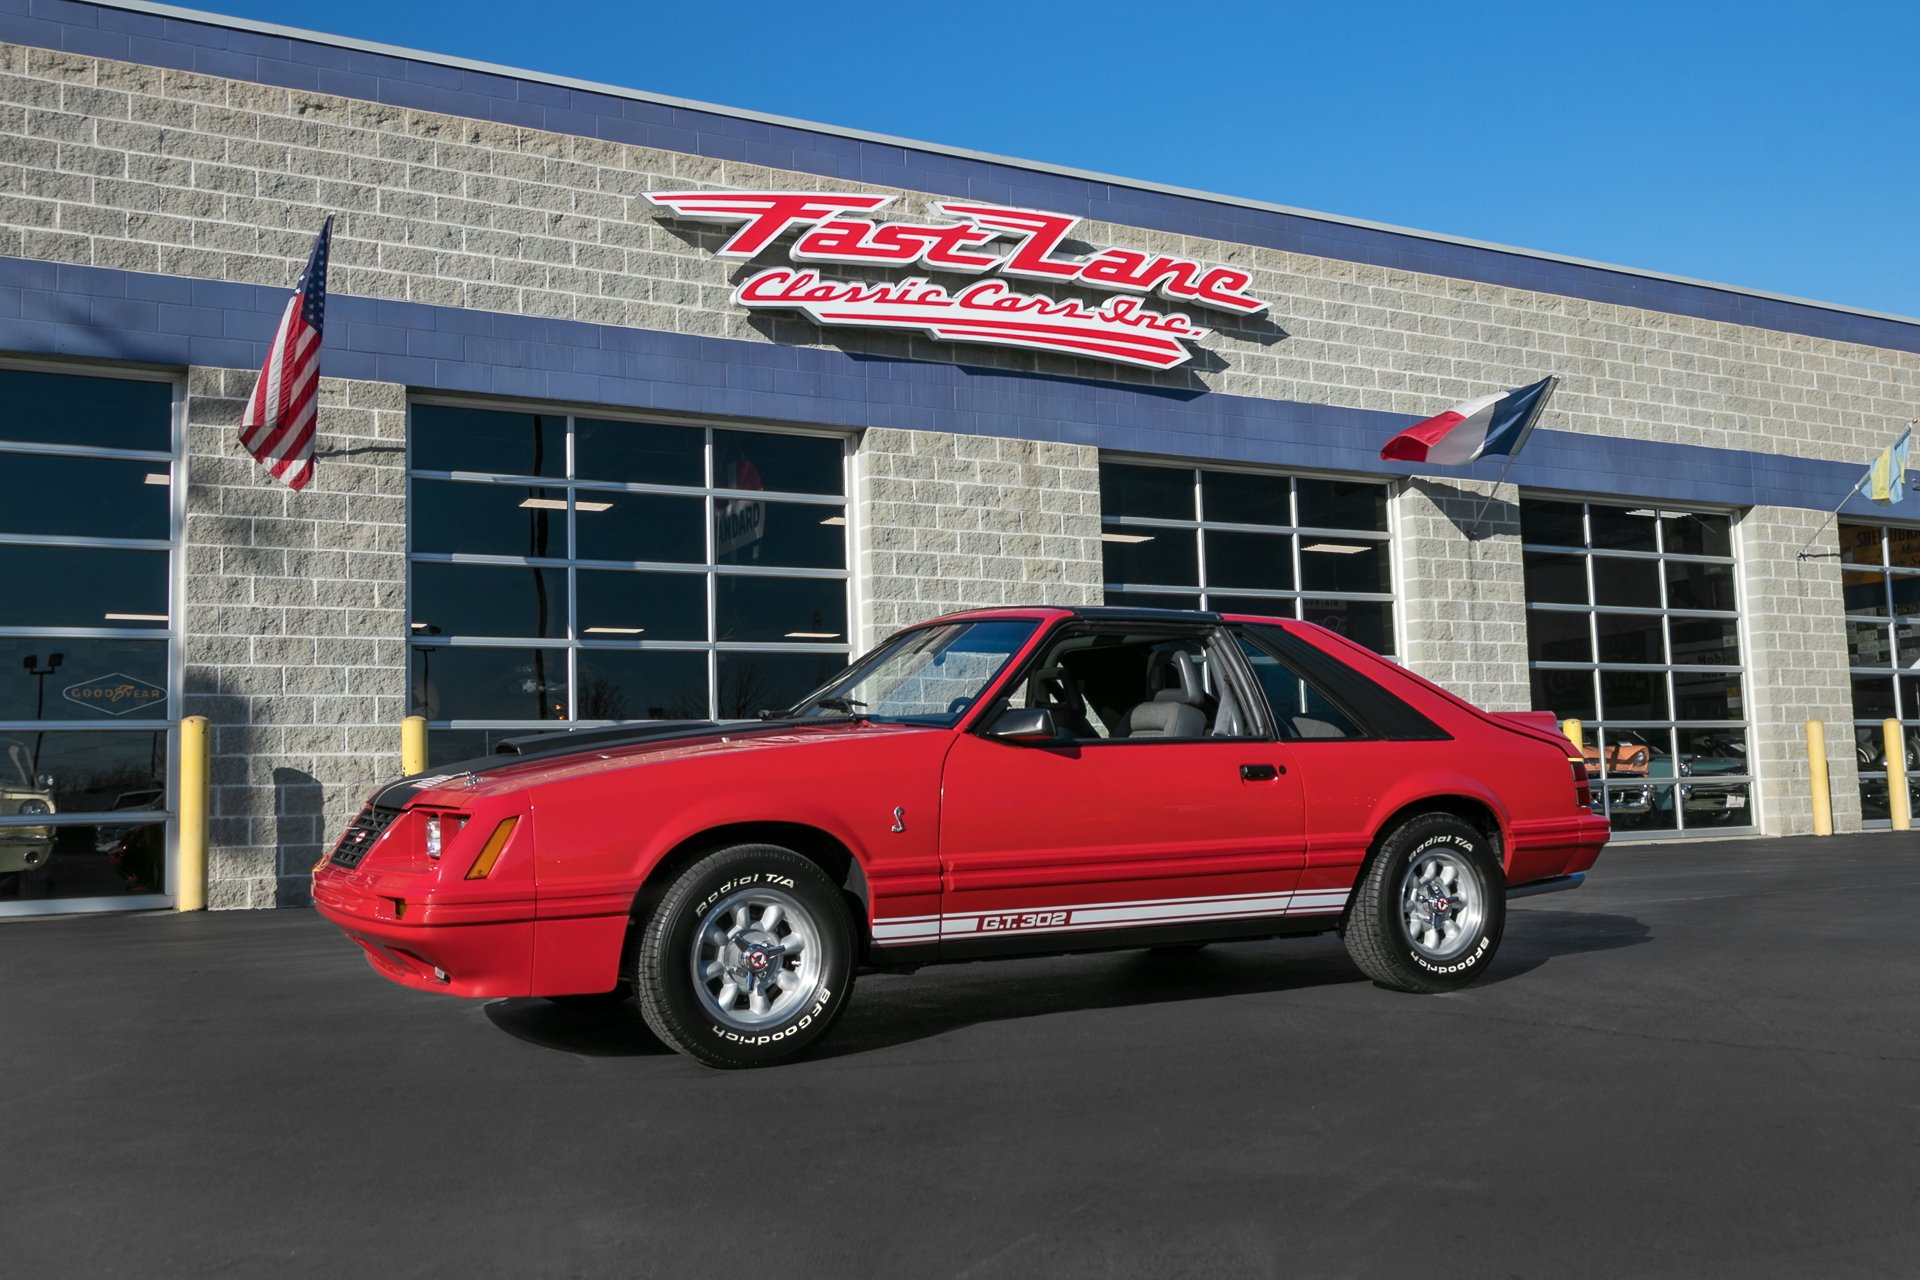 1984 ford mustang predator fast lane classic cars 1984 ford mustang predator fast lane